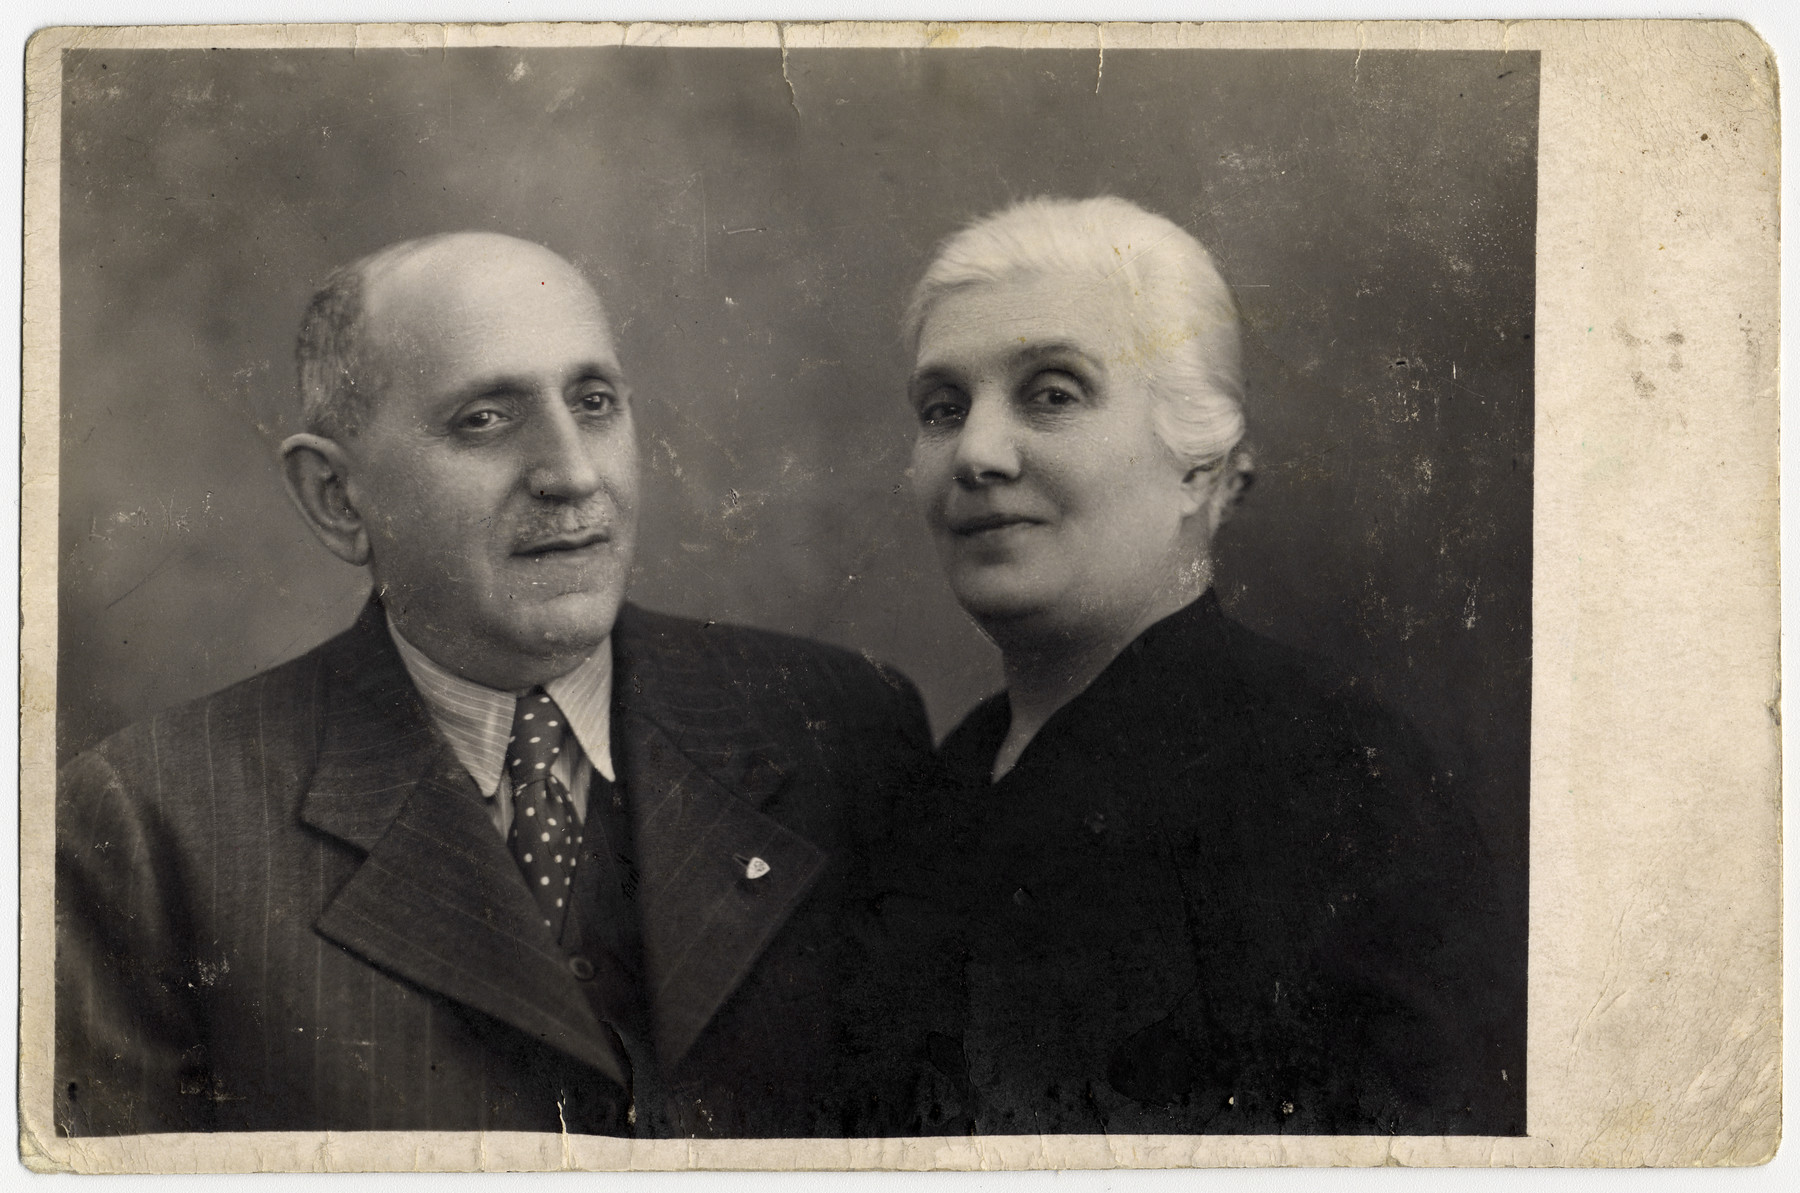 Studio portrait of Malvin (nee Mulhoffer) and Sandor Kohn, grandparents of the donor.  Both were killed in Auschwitz in June 1944.